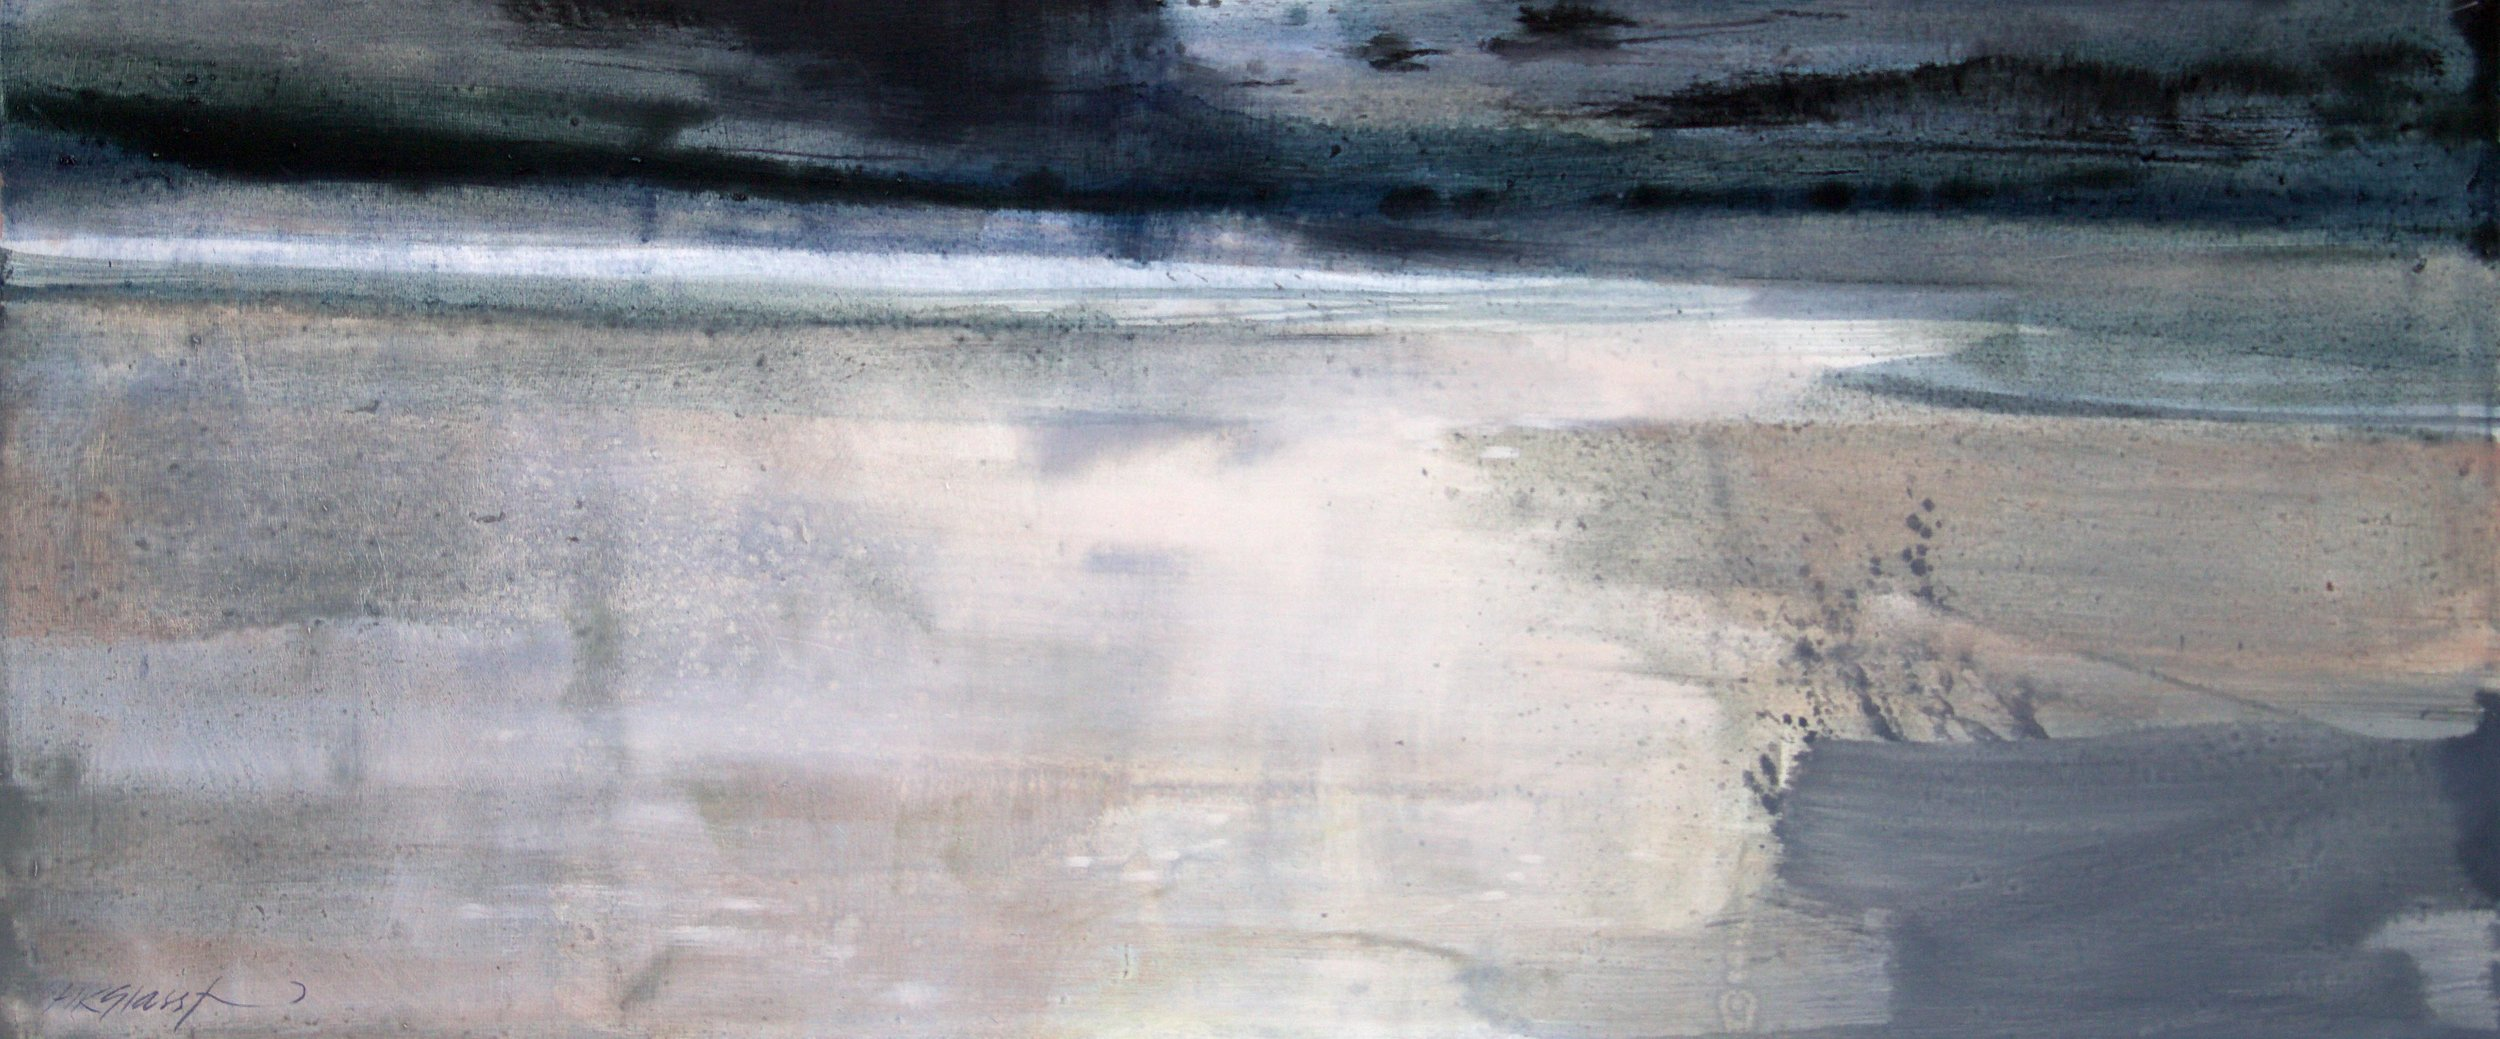 Travelling light • Oil on Board • 36x85cm • Sold